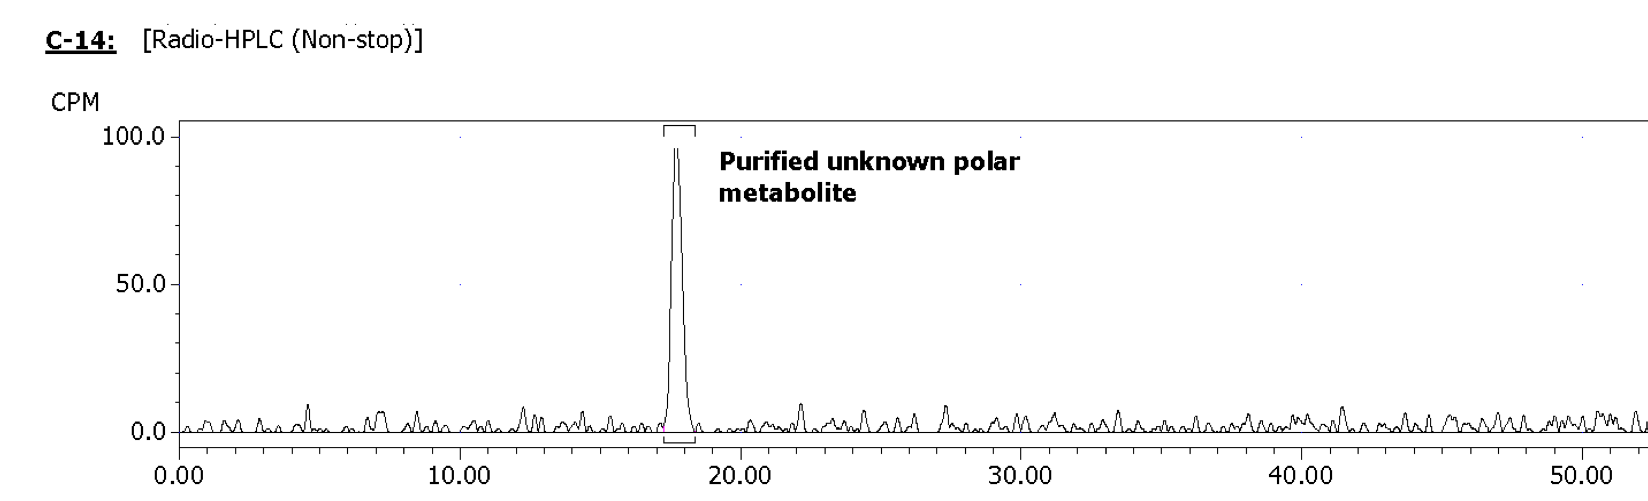 Figure 2.1: C18 reverse phase HPLC from a wheat sample grown in soil treated with [phenyl-U-14C] pesticide